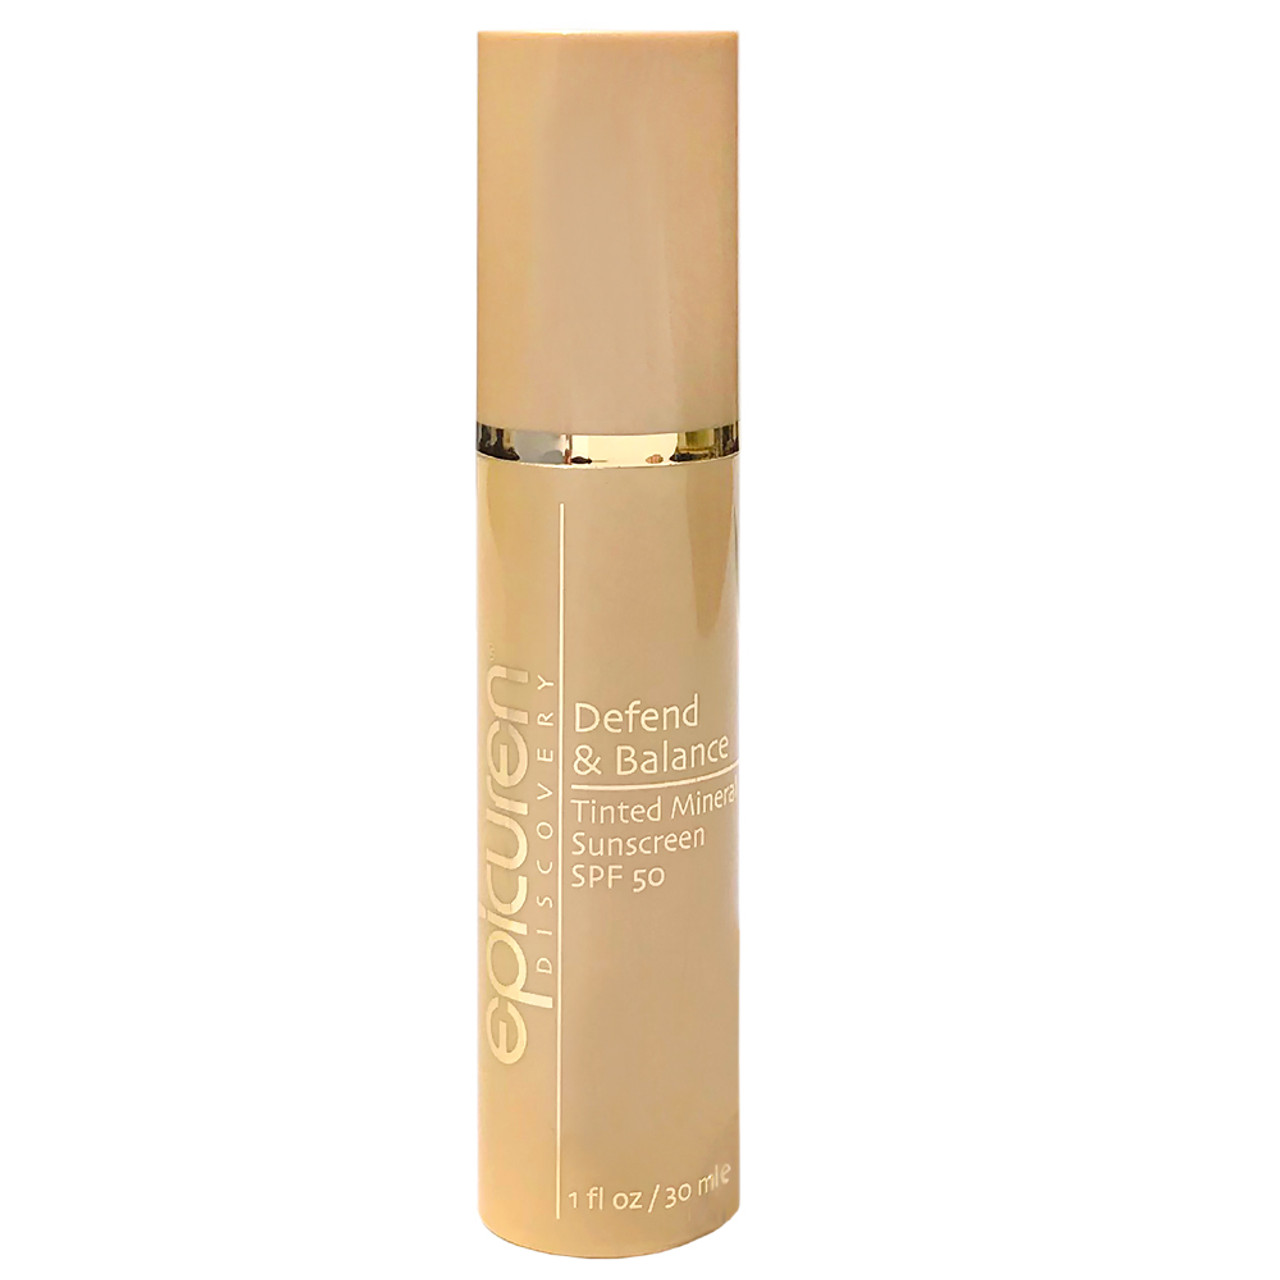 epicuren Discovery Defend and Balance Tinted Mineral Sunscreen SPF 50 BeautifiedYou.com